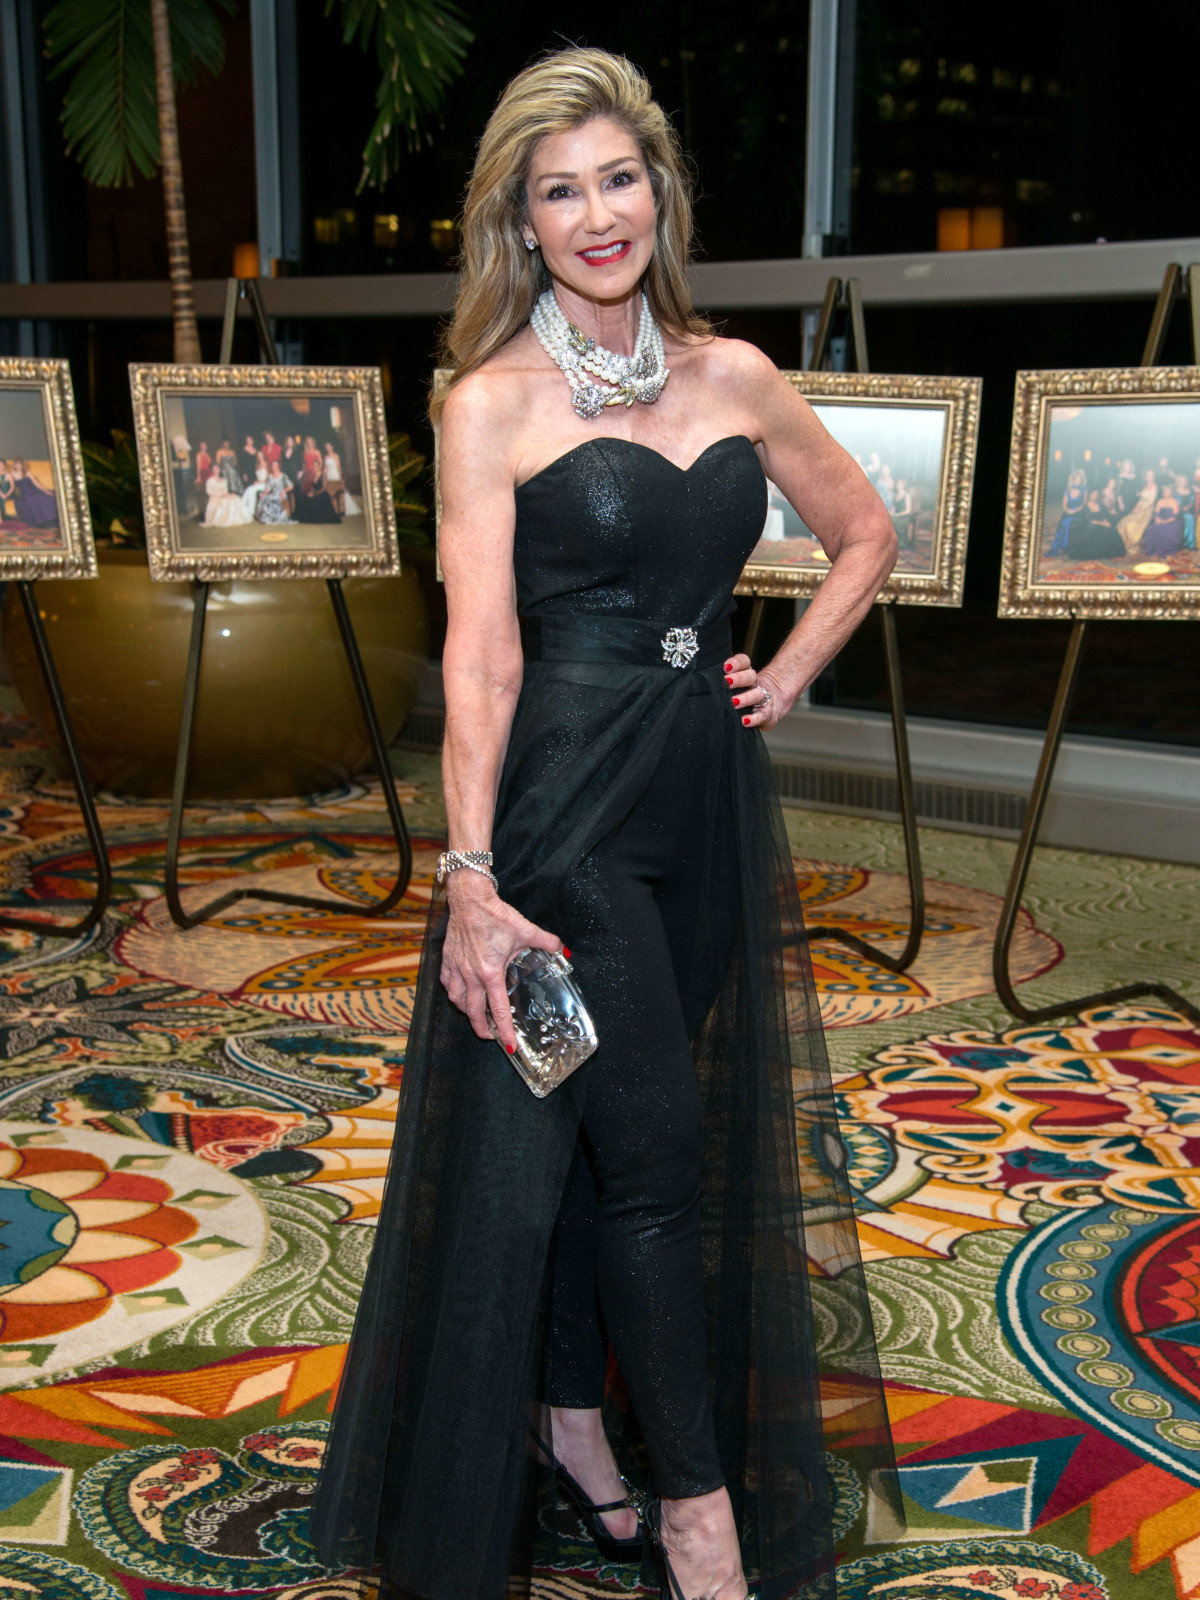 Houston, Women of Distinction fashionable gowns, Feb 2017, Patti Murphy